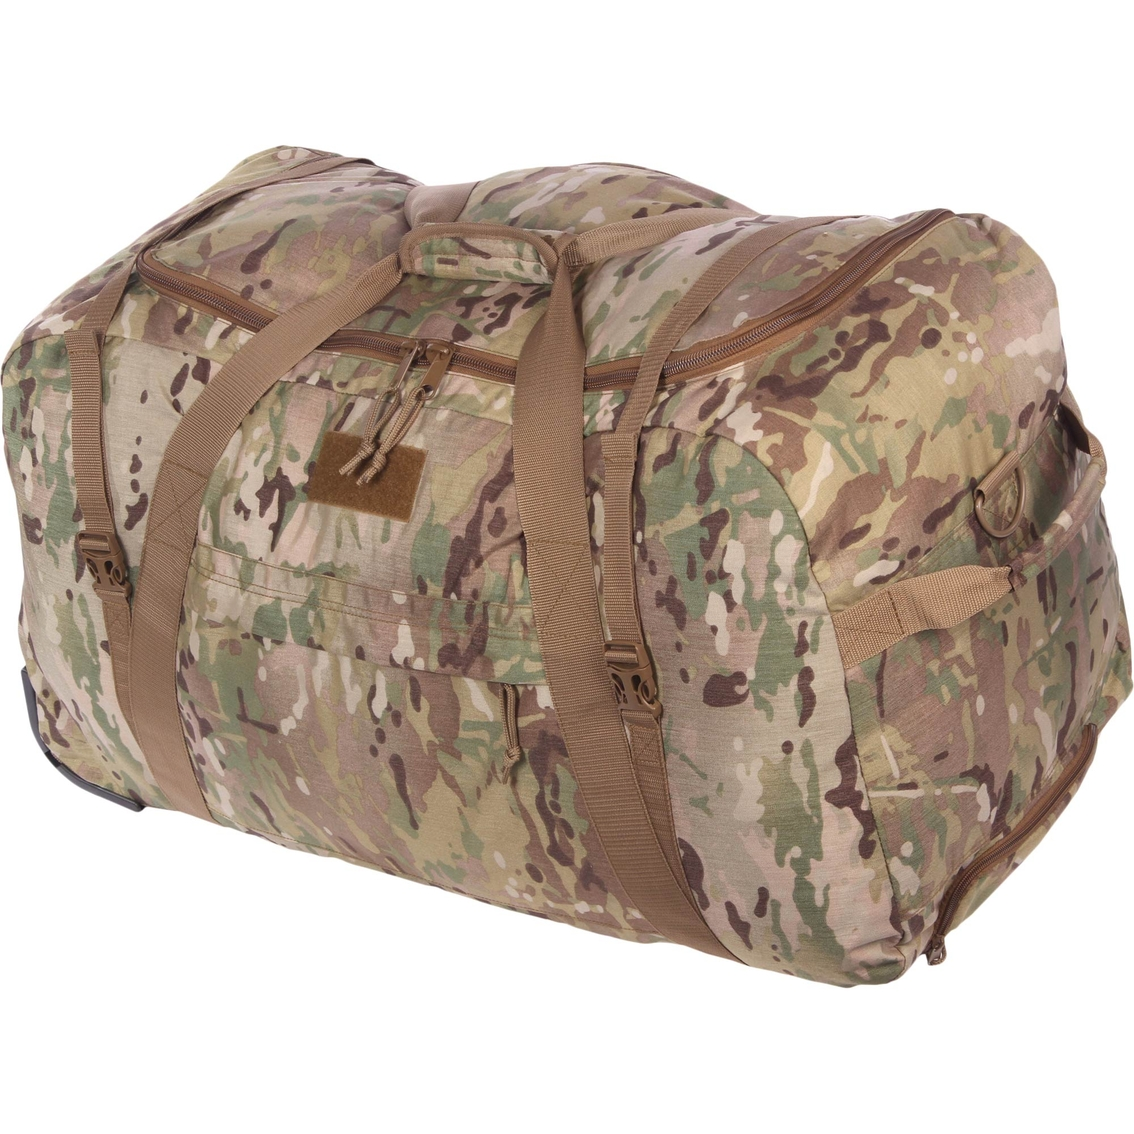 Sandpiper Of California Frontier Rolling Duffle Bag